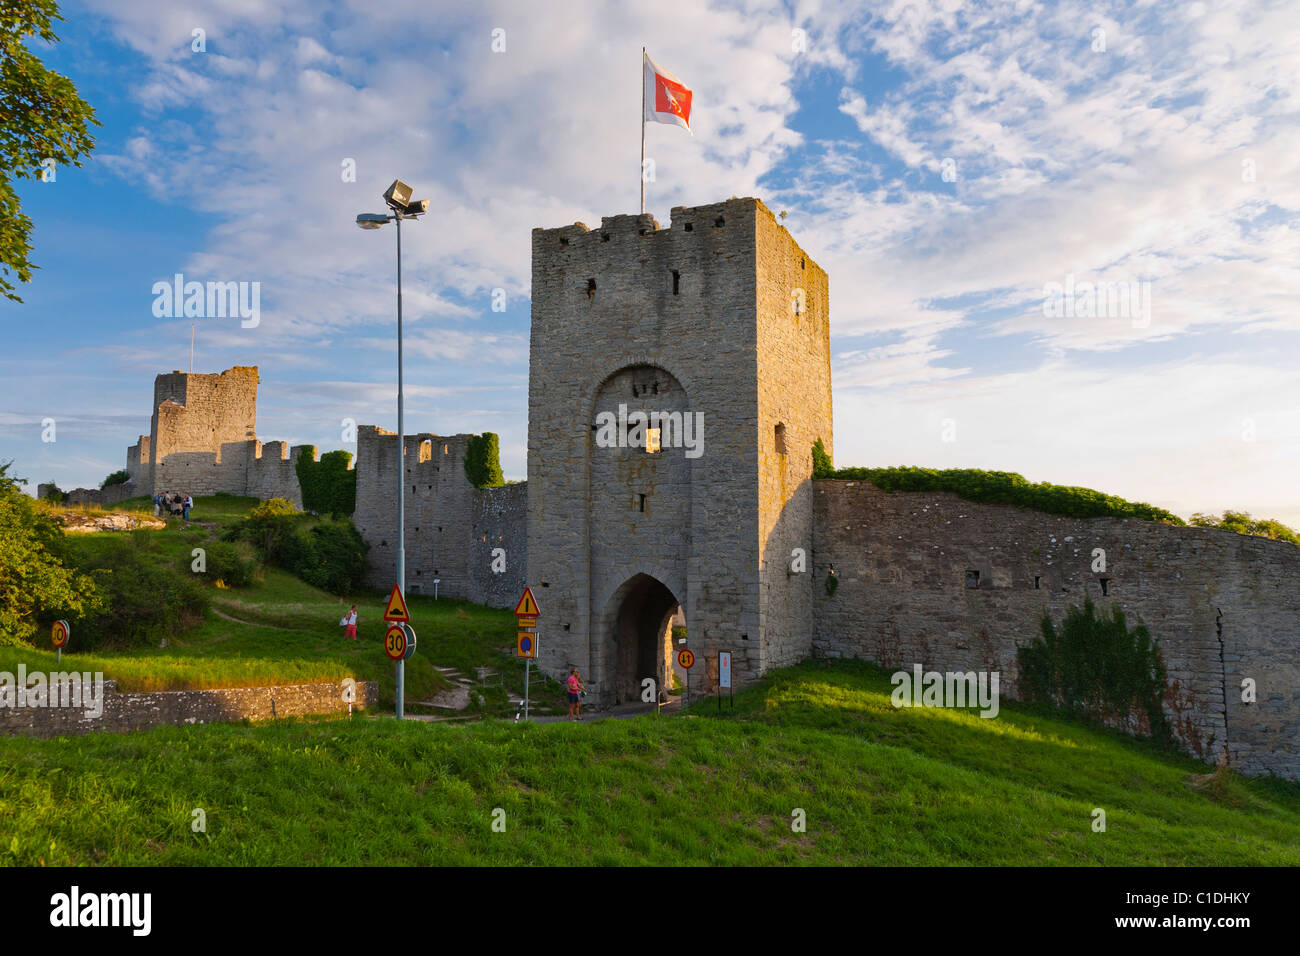 North entrance in the city wall of Unesco World Heritage town Visby, Gotland, Sweden. - Stock Image